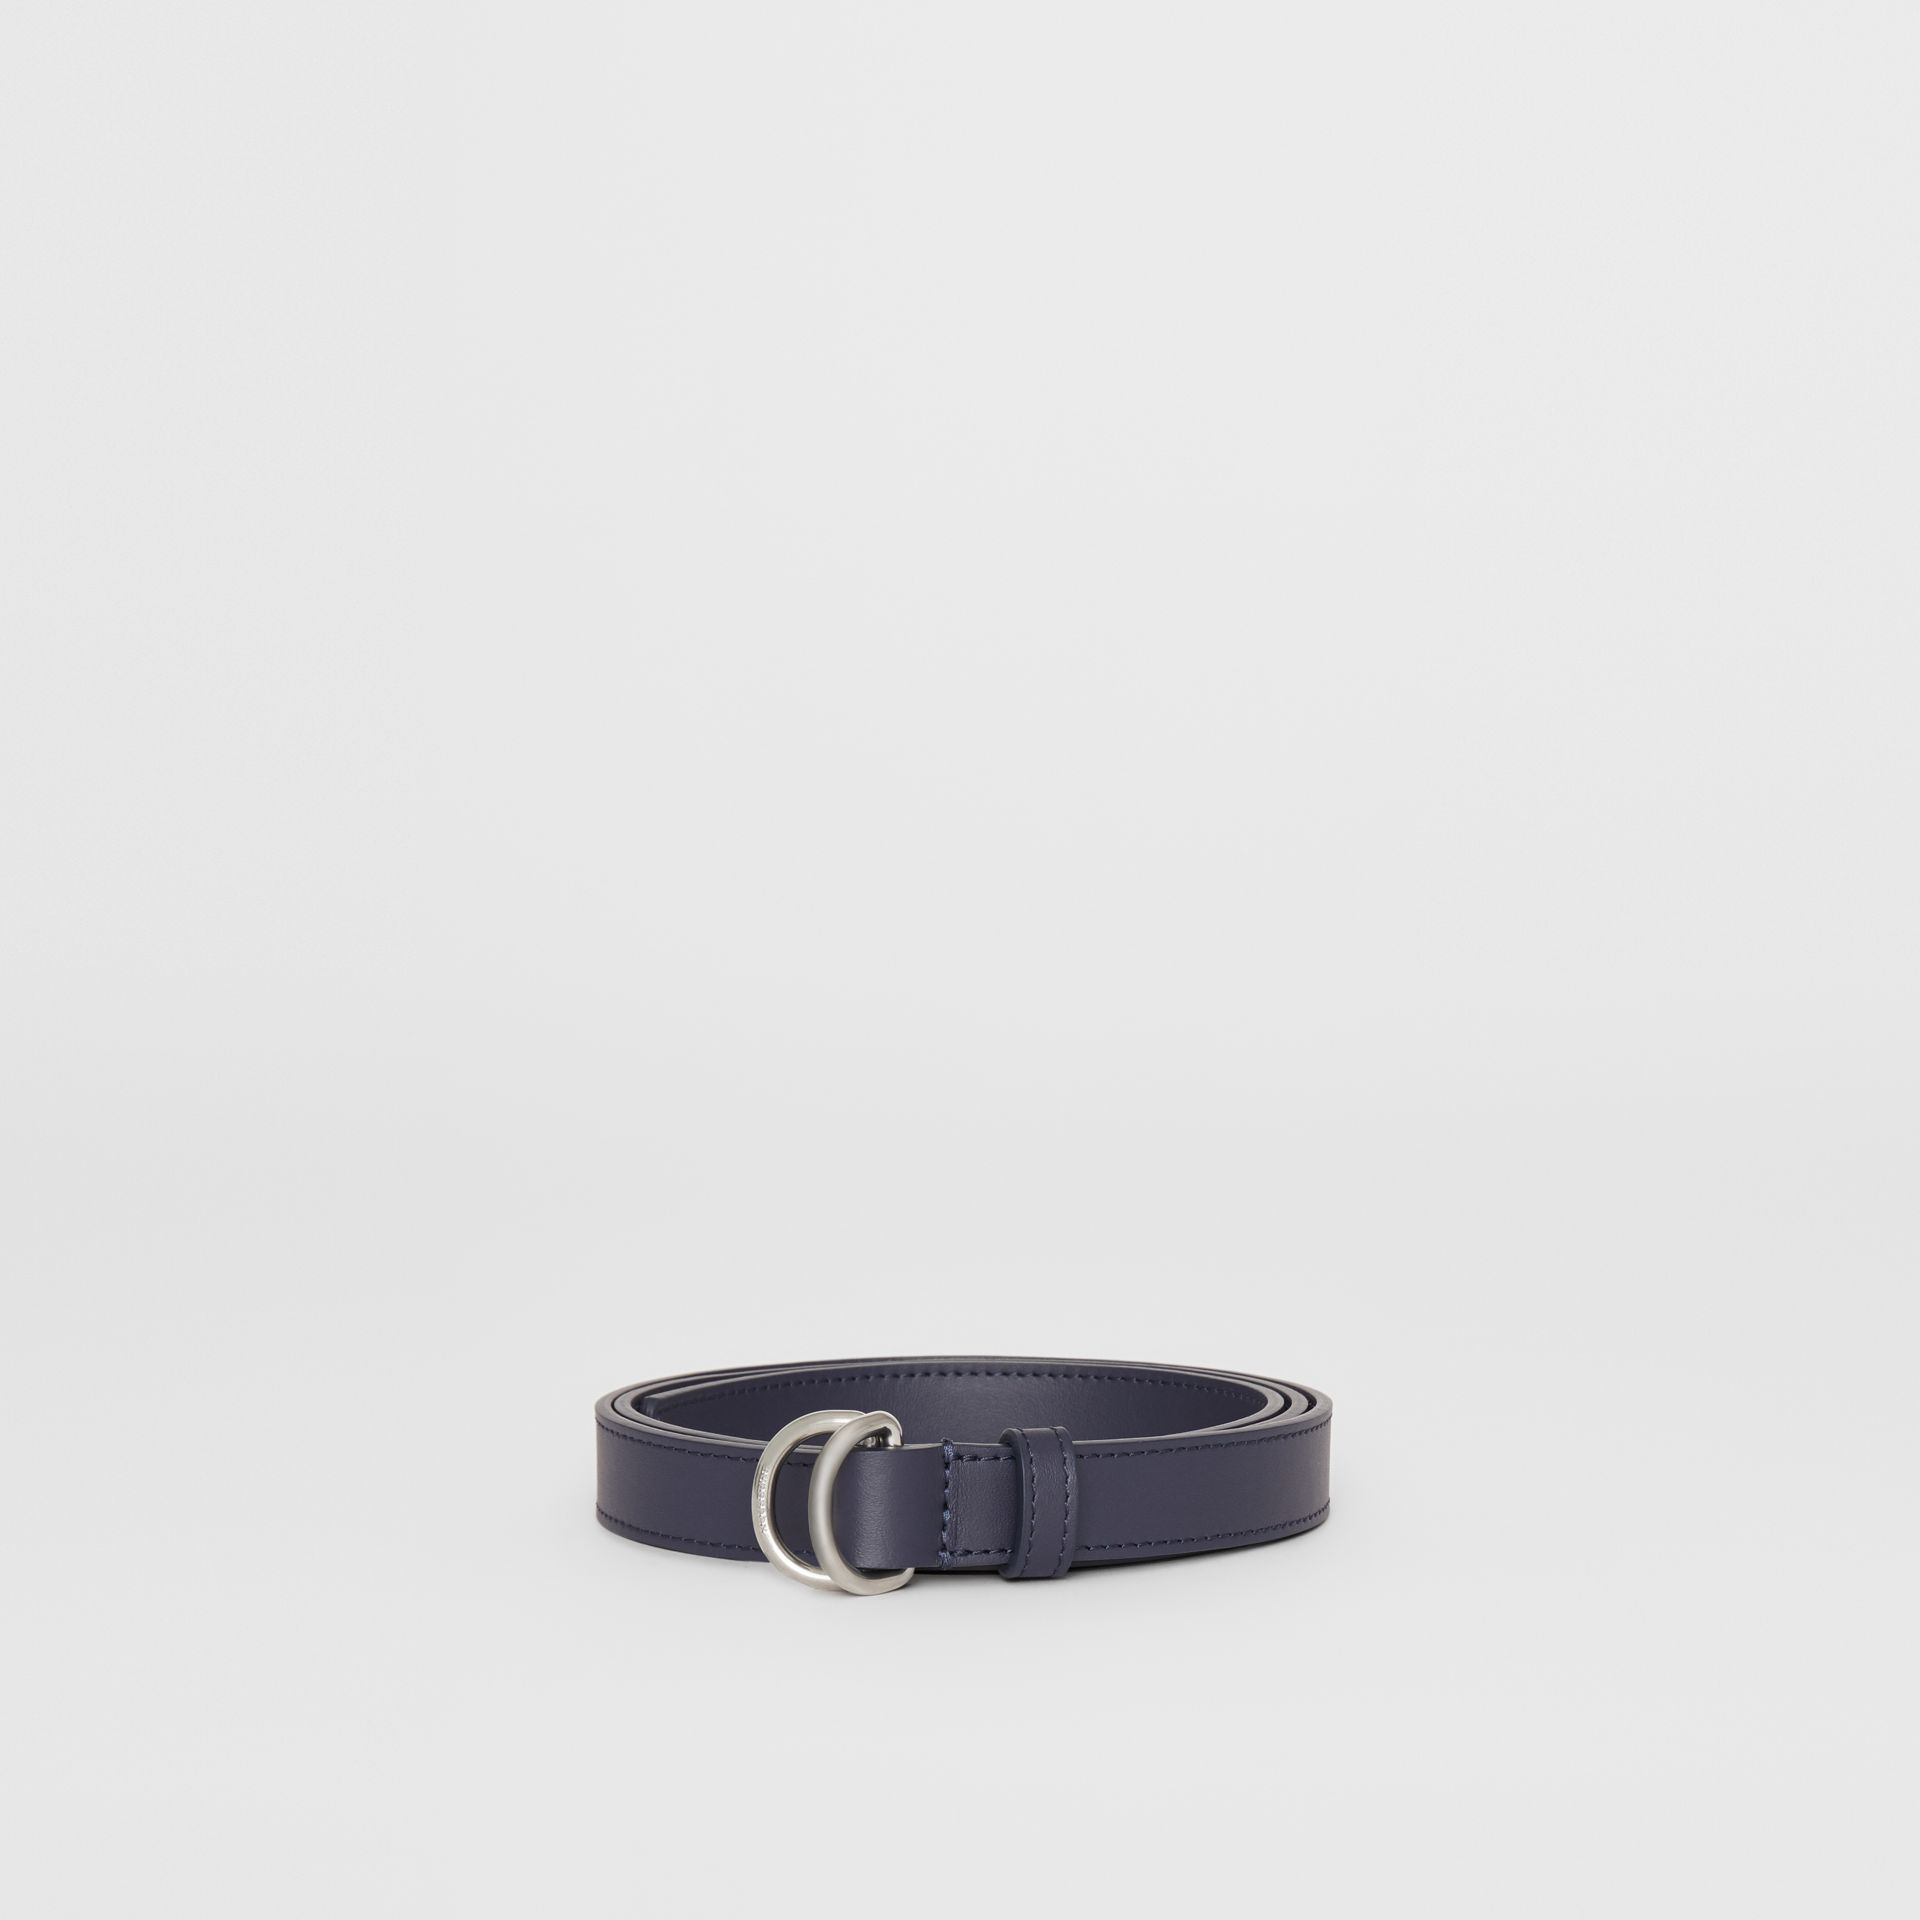 Slim Leather Double D-ring Belt in Regency Blue - Women | Burberry Australia - gallery image 3